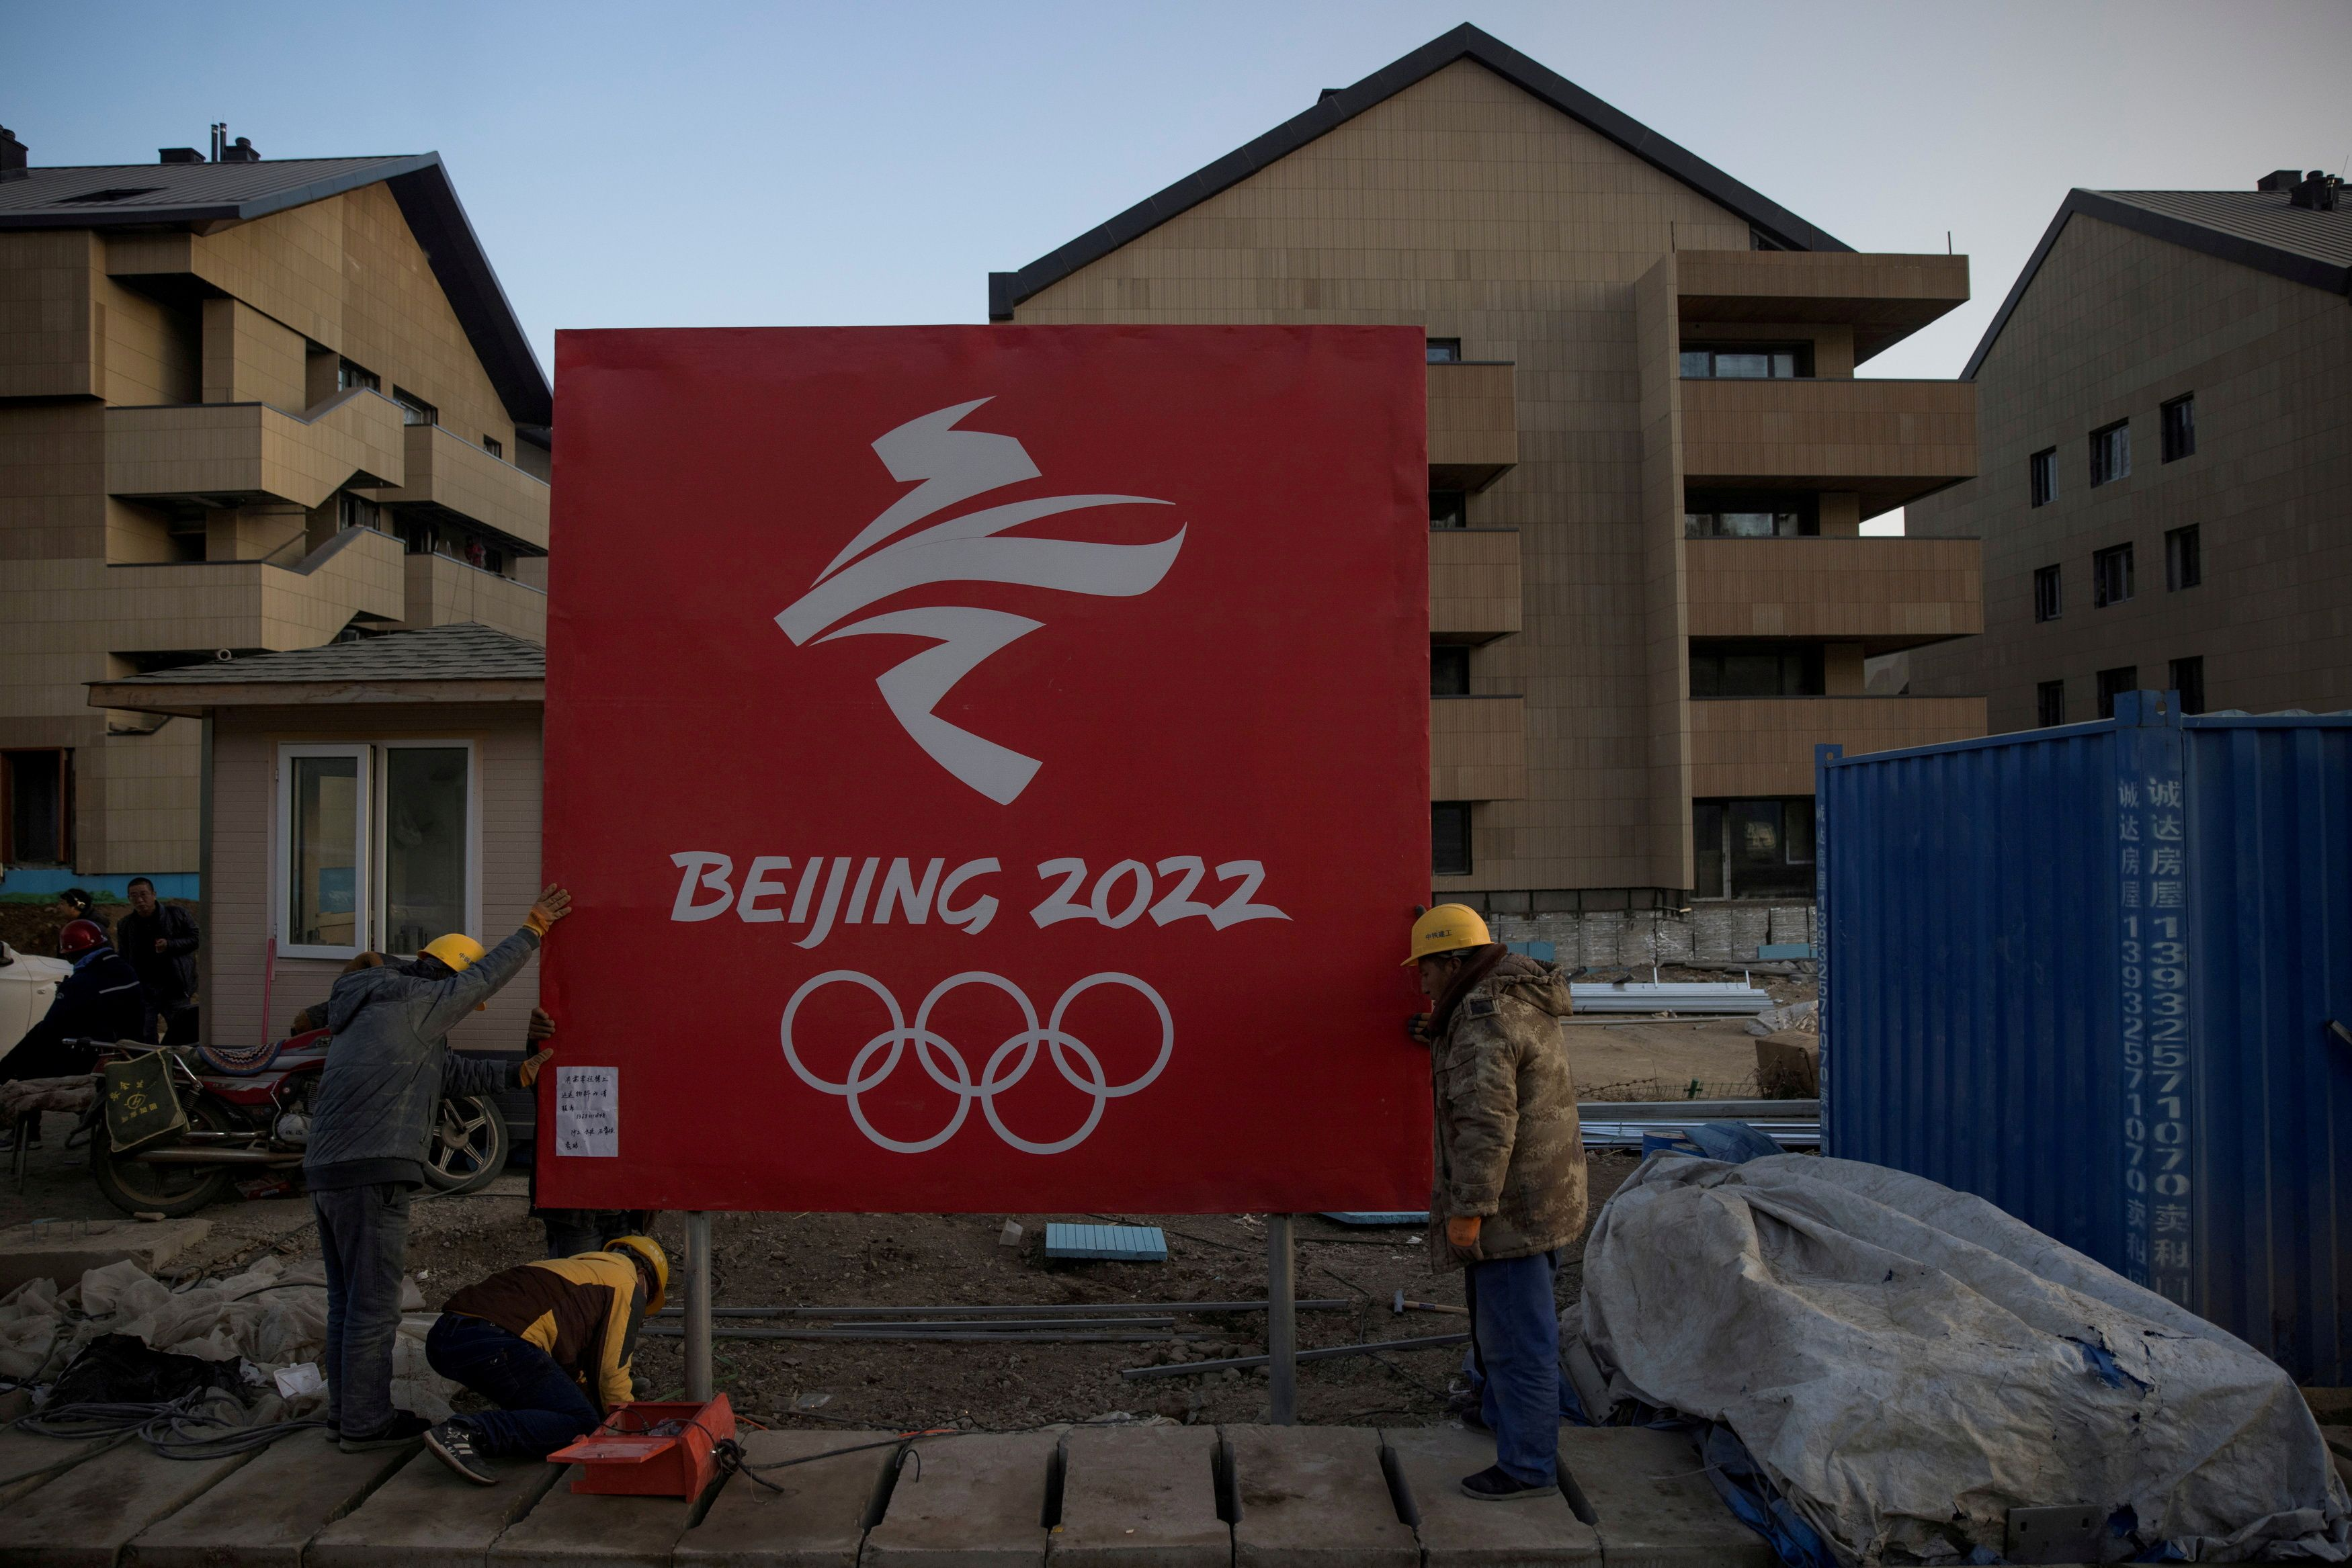 Workers move a sign at the Olympic Village for the 2022 Winter Olympics in the Chongli district of Zhangjiakou, Hebei province, China, October 29, 2020. REUTERS/Thomas Peter/File Photo